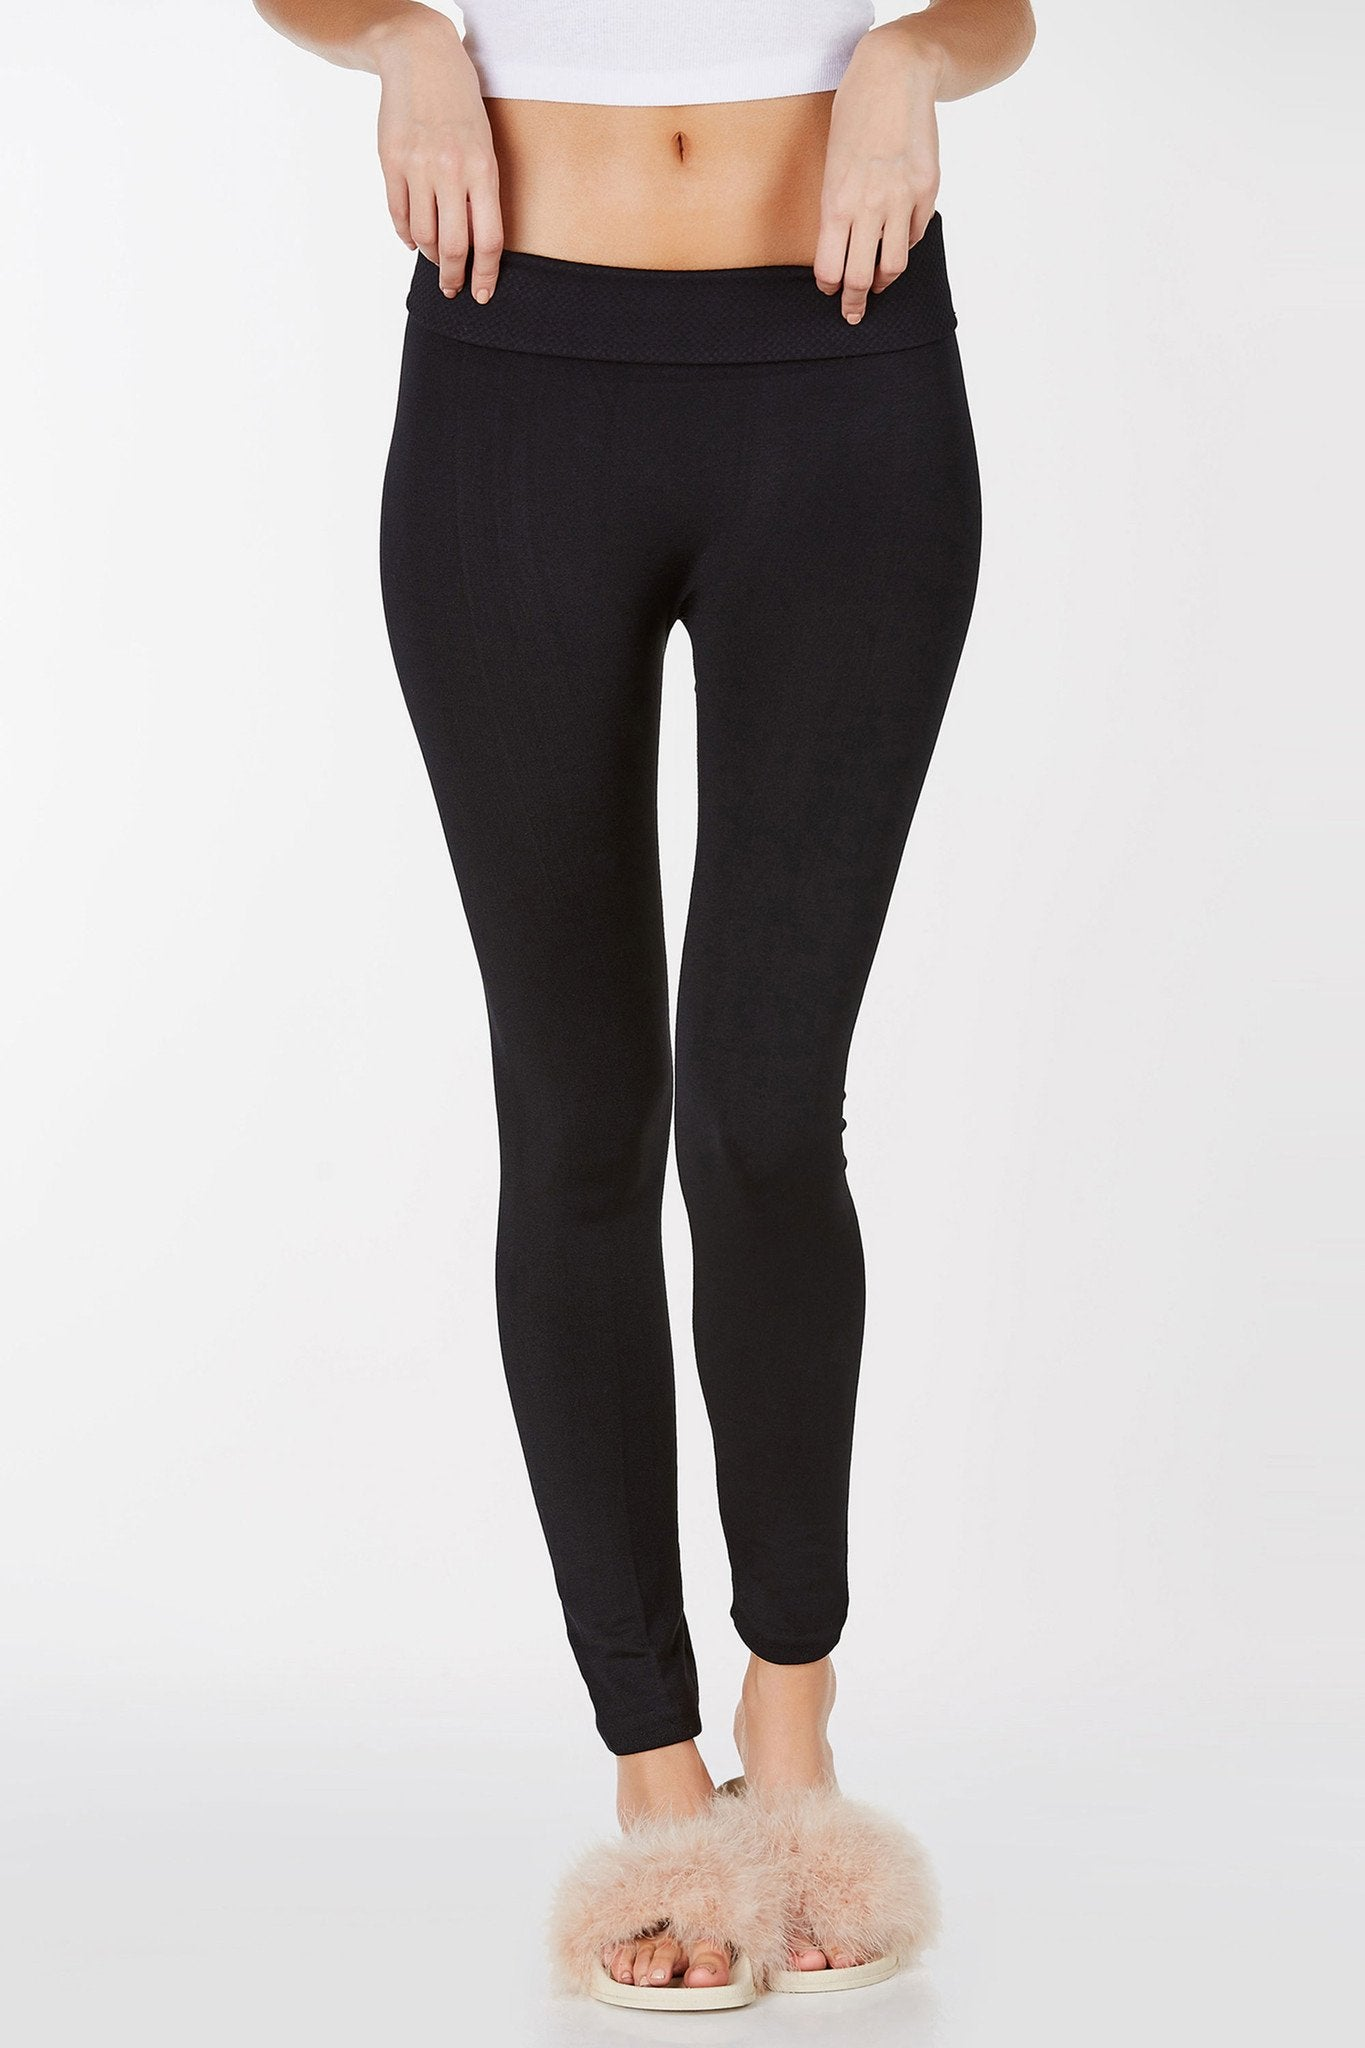 High rise leggings with fold over waistband. Stretchy material with slim fit.